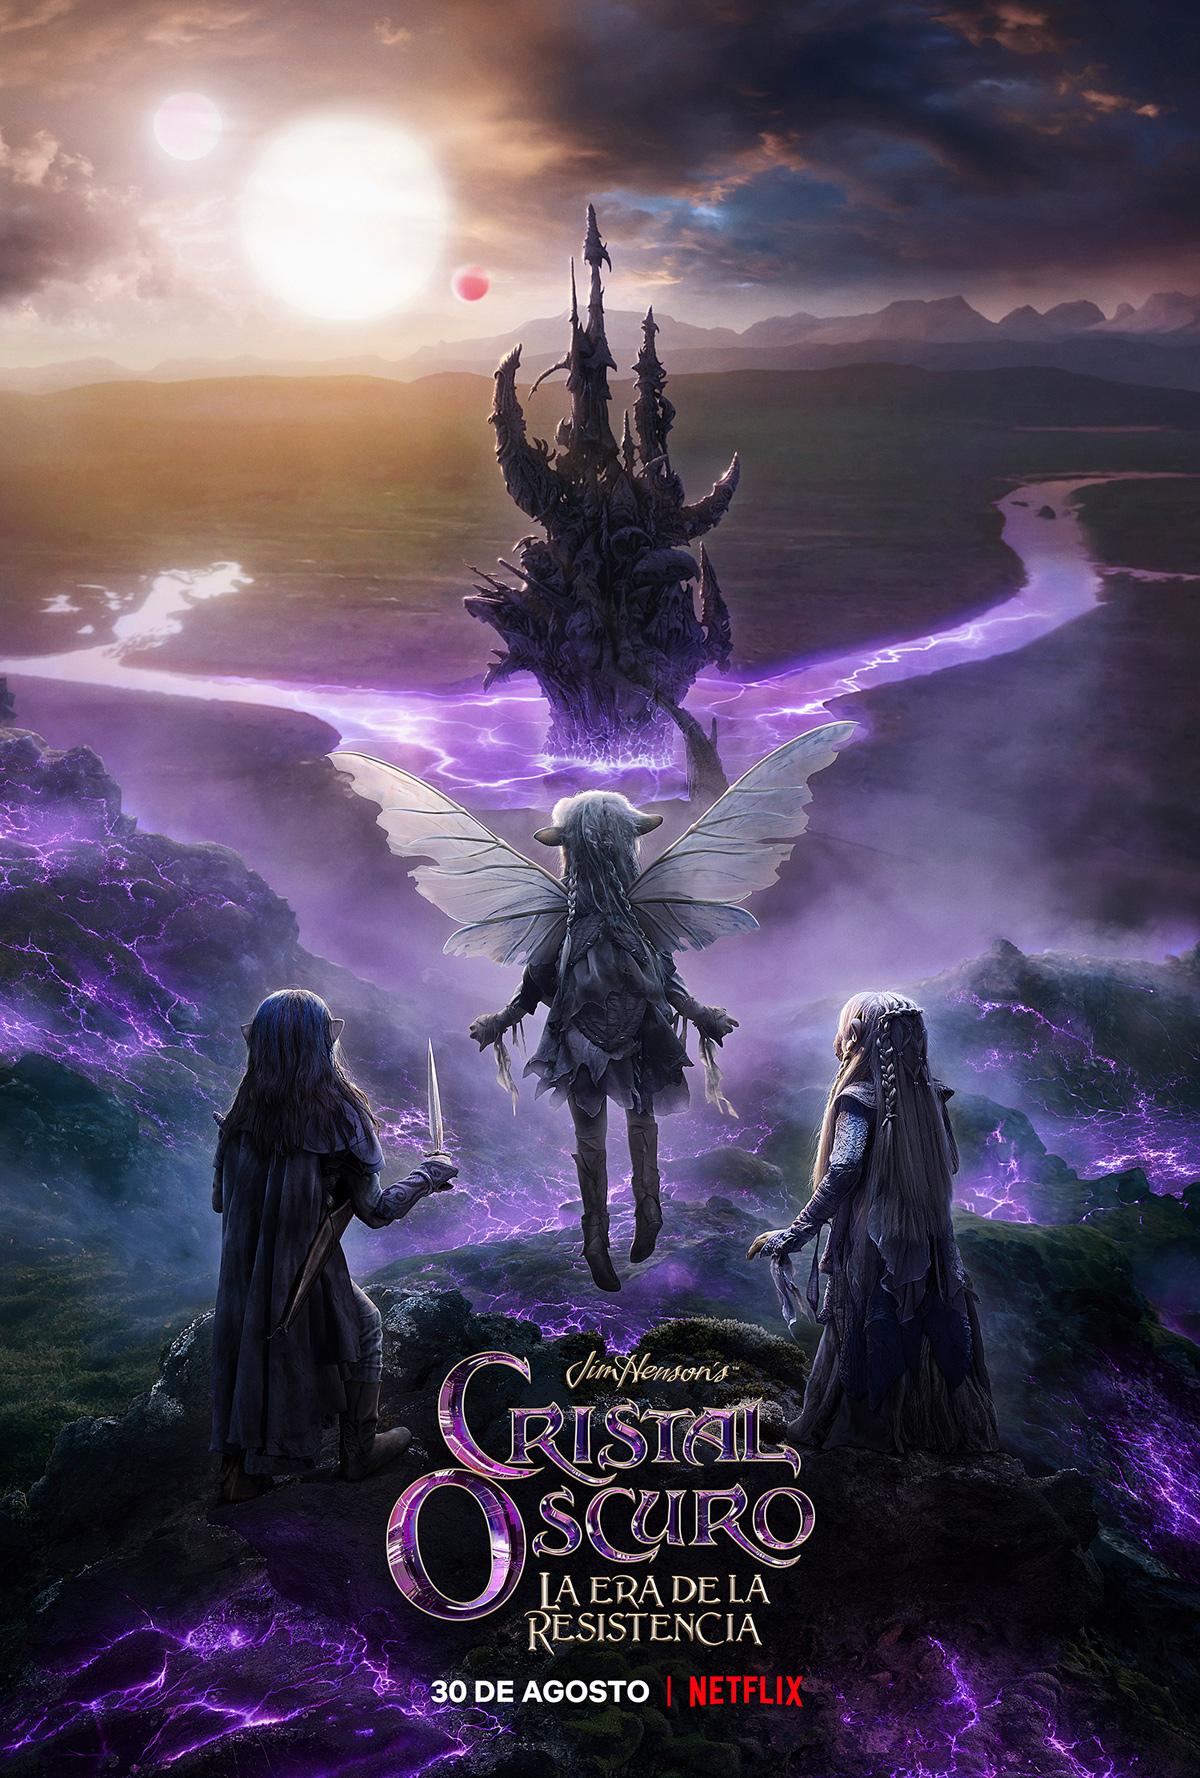 33 - The Dark Crystal: Age of Resistance